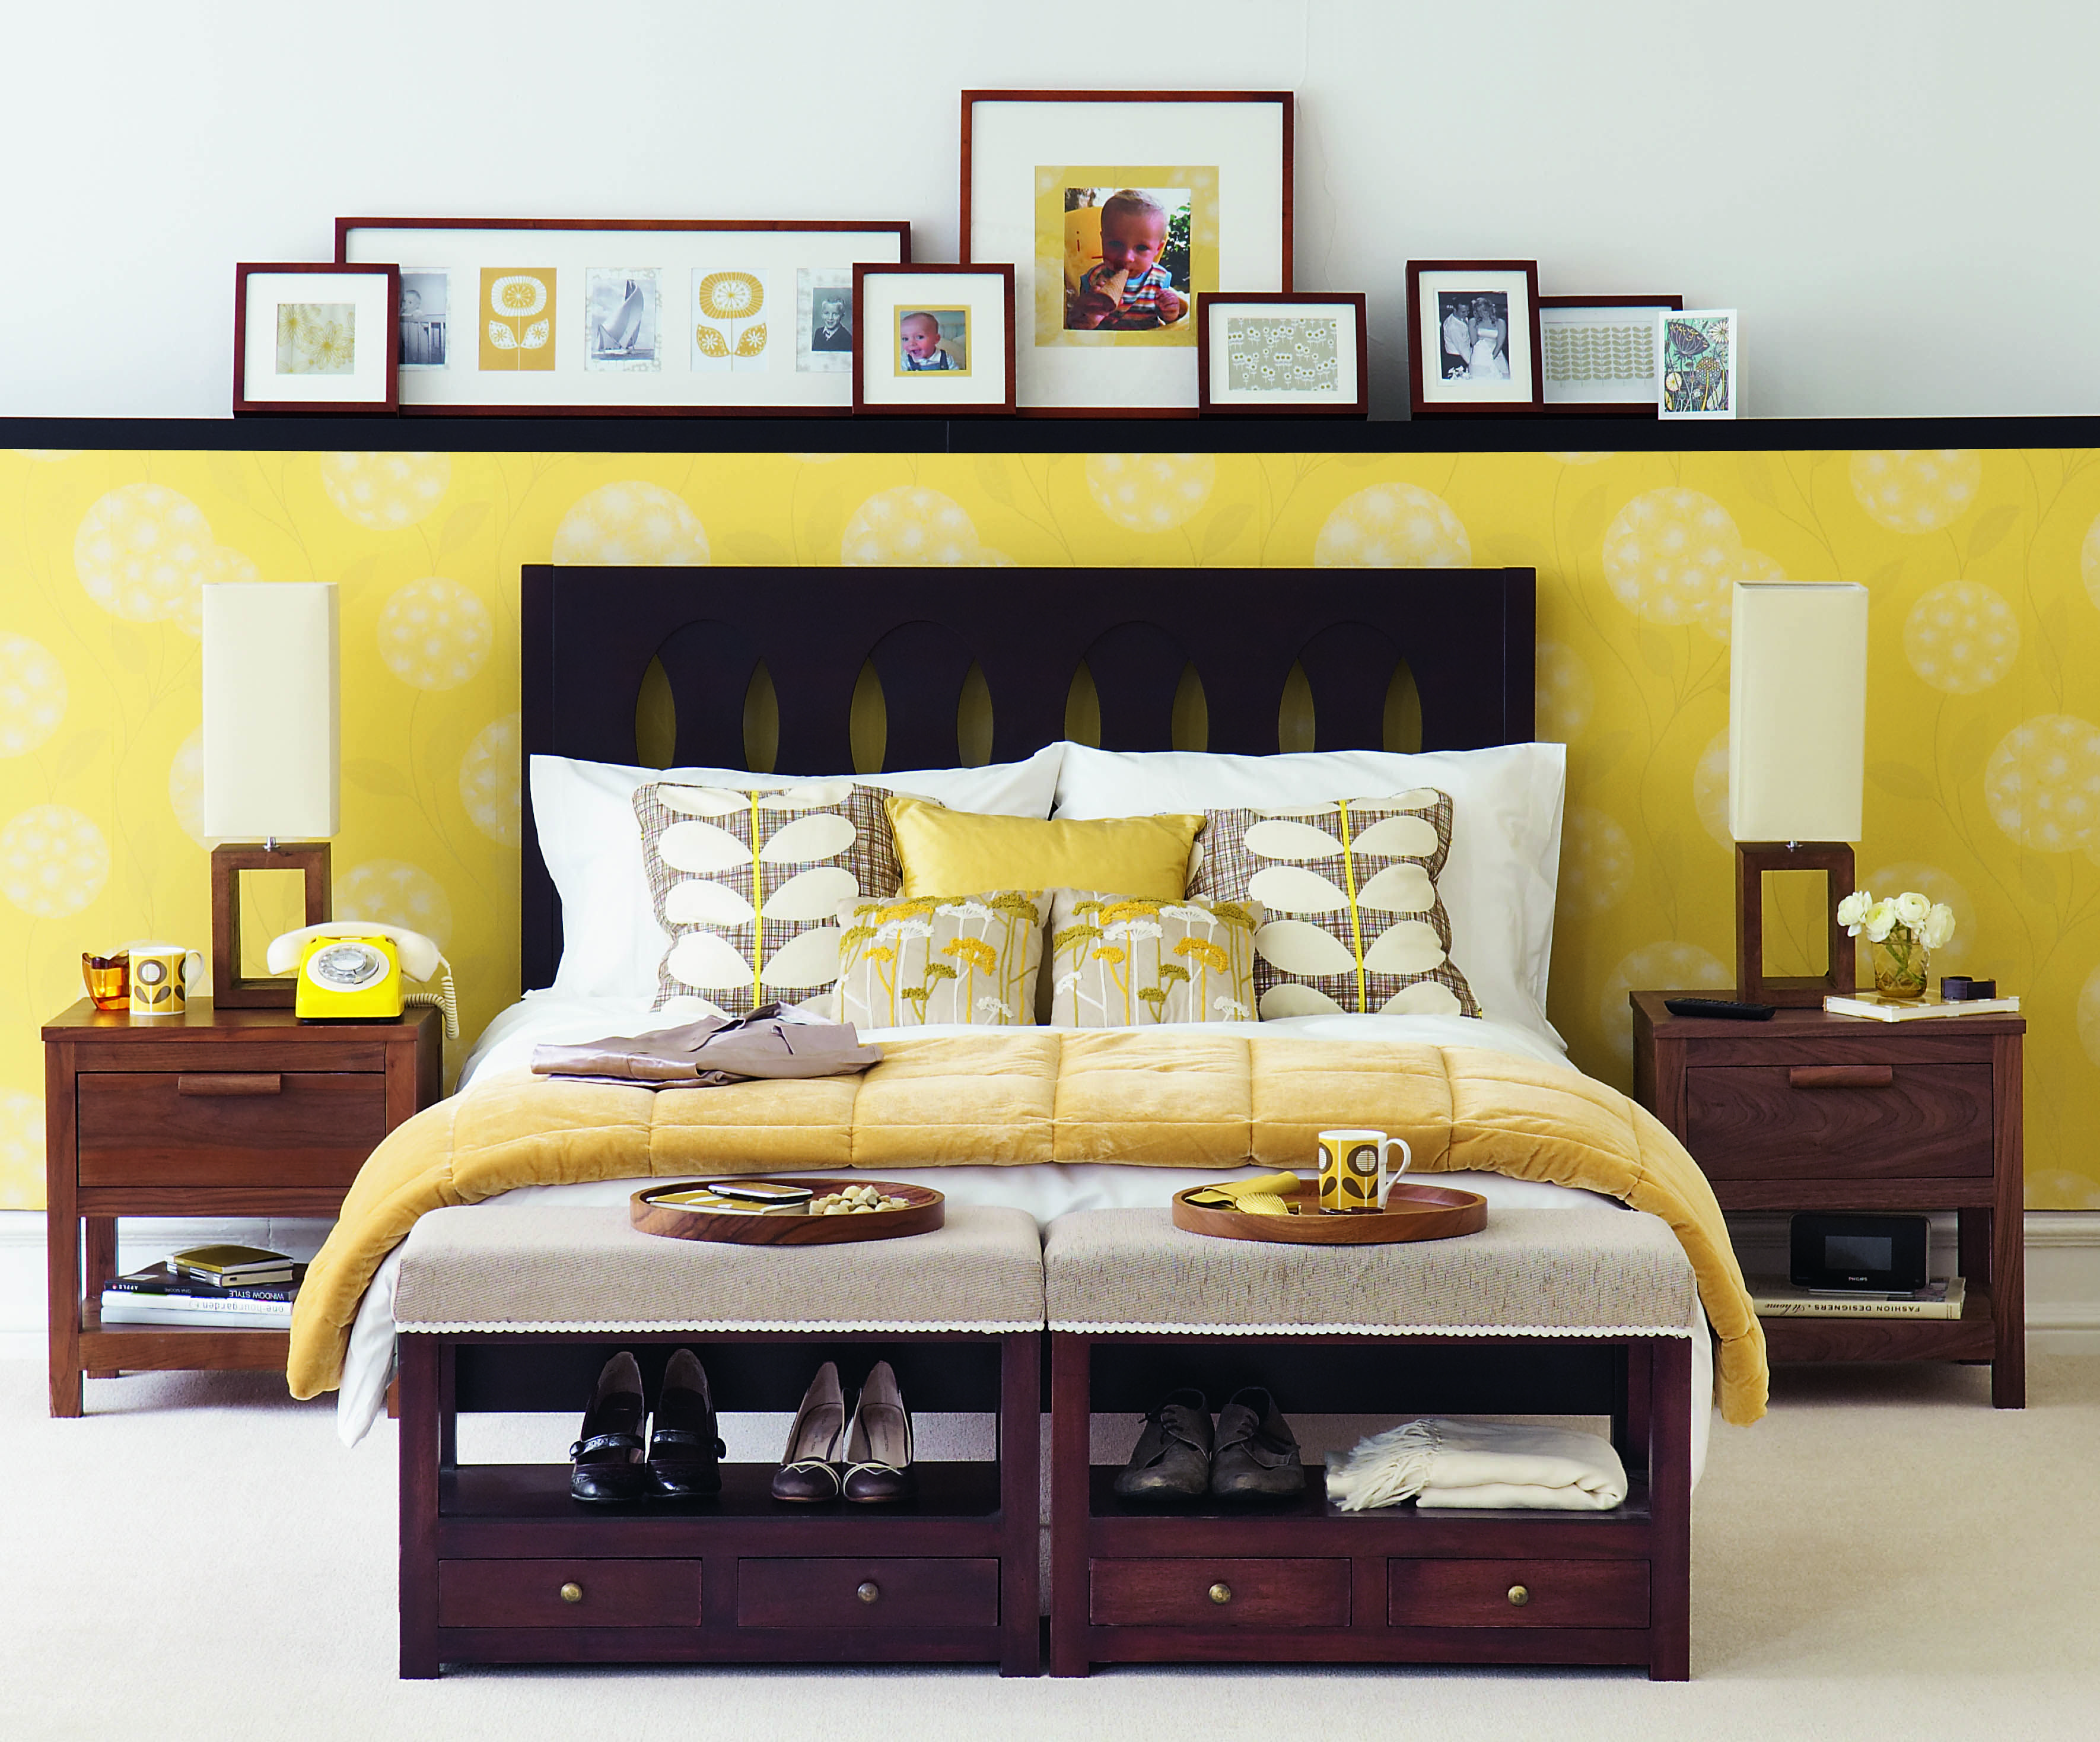 Pinterest Pictures Of Yellow End Tables With Gray Mid Century Modern Bedroom Set Design Ideas You Ll Love